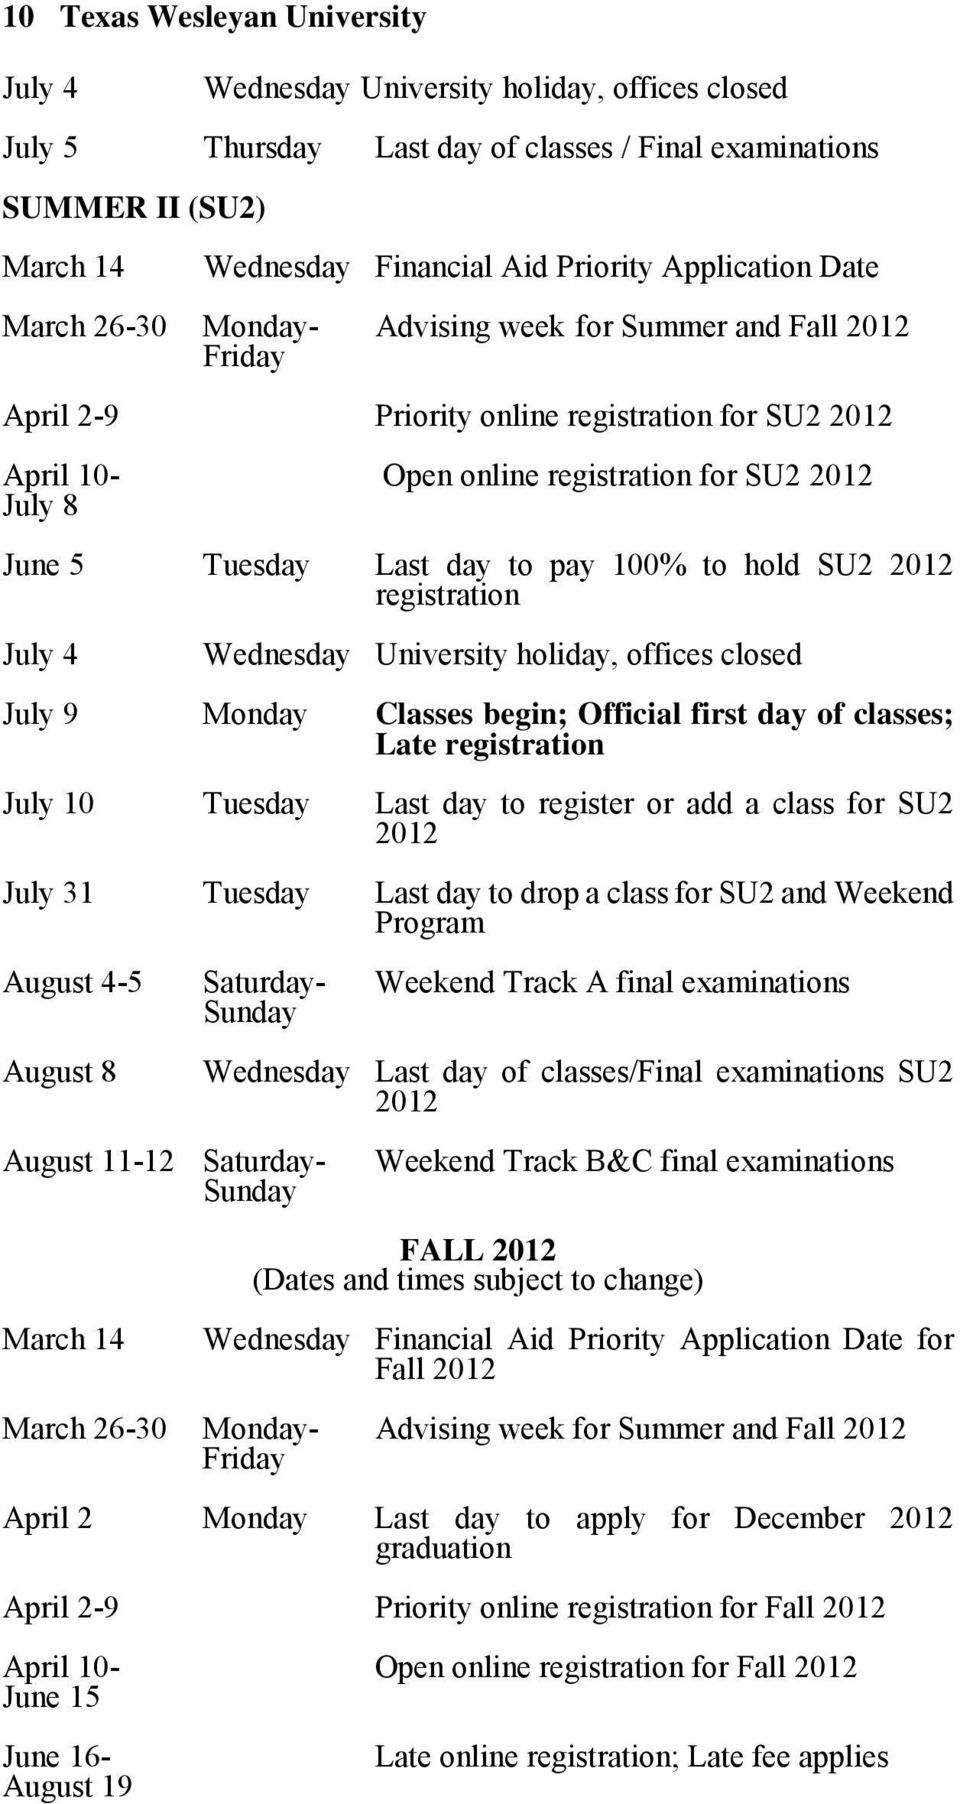 Tuesday Last day to pay 100% to hold SU2 2012 registration July 4 Wednesday University holiday, offices closed July 9 Monday Classes begin; Official first day of classes; Late registration July 10